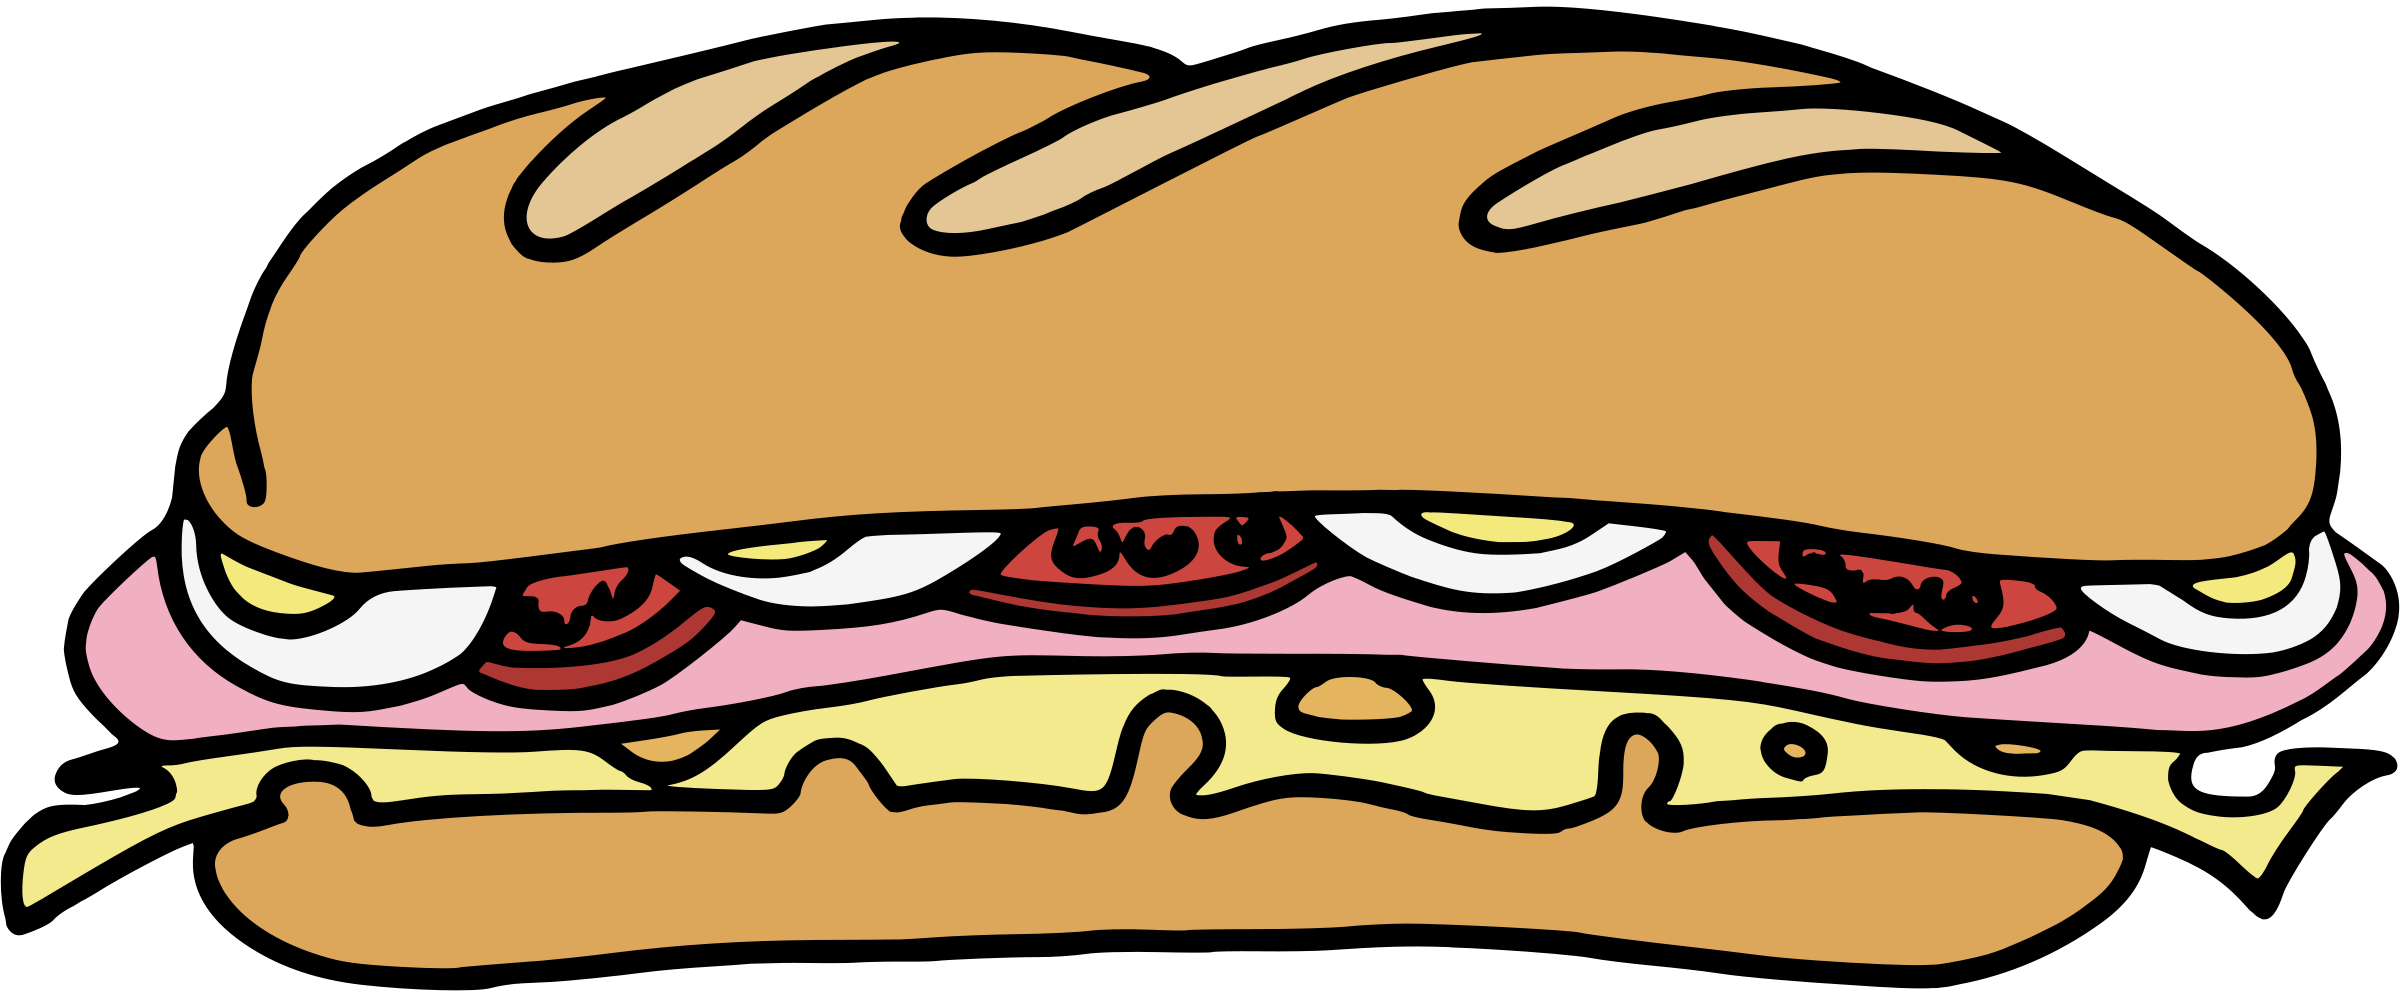 Sandwich cartoon png. One icons free and